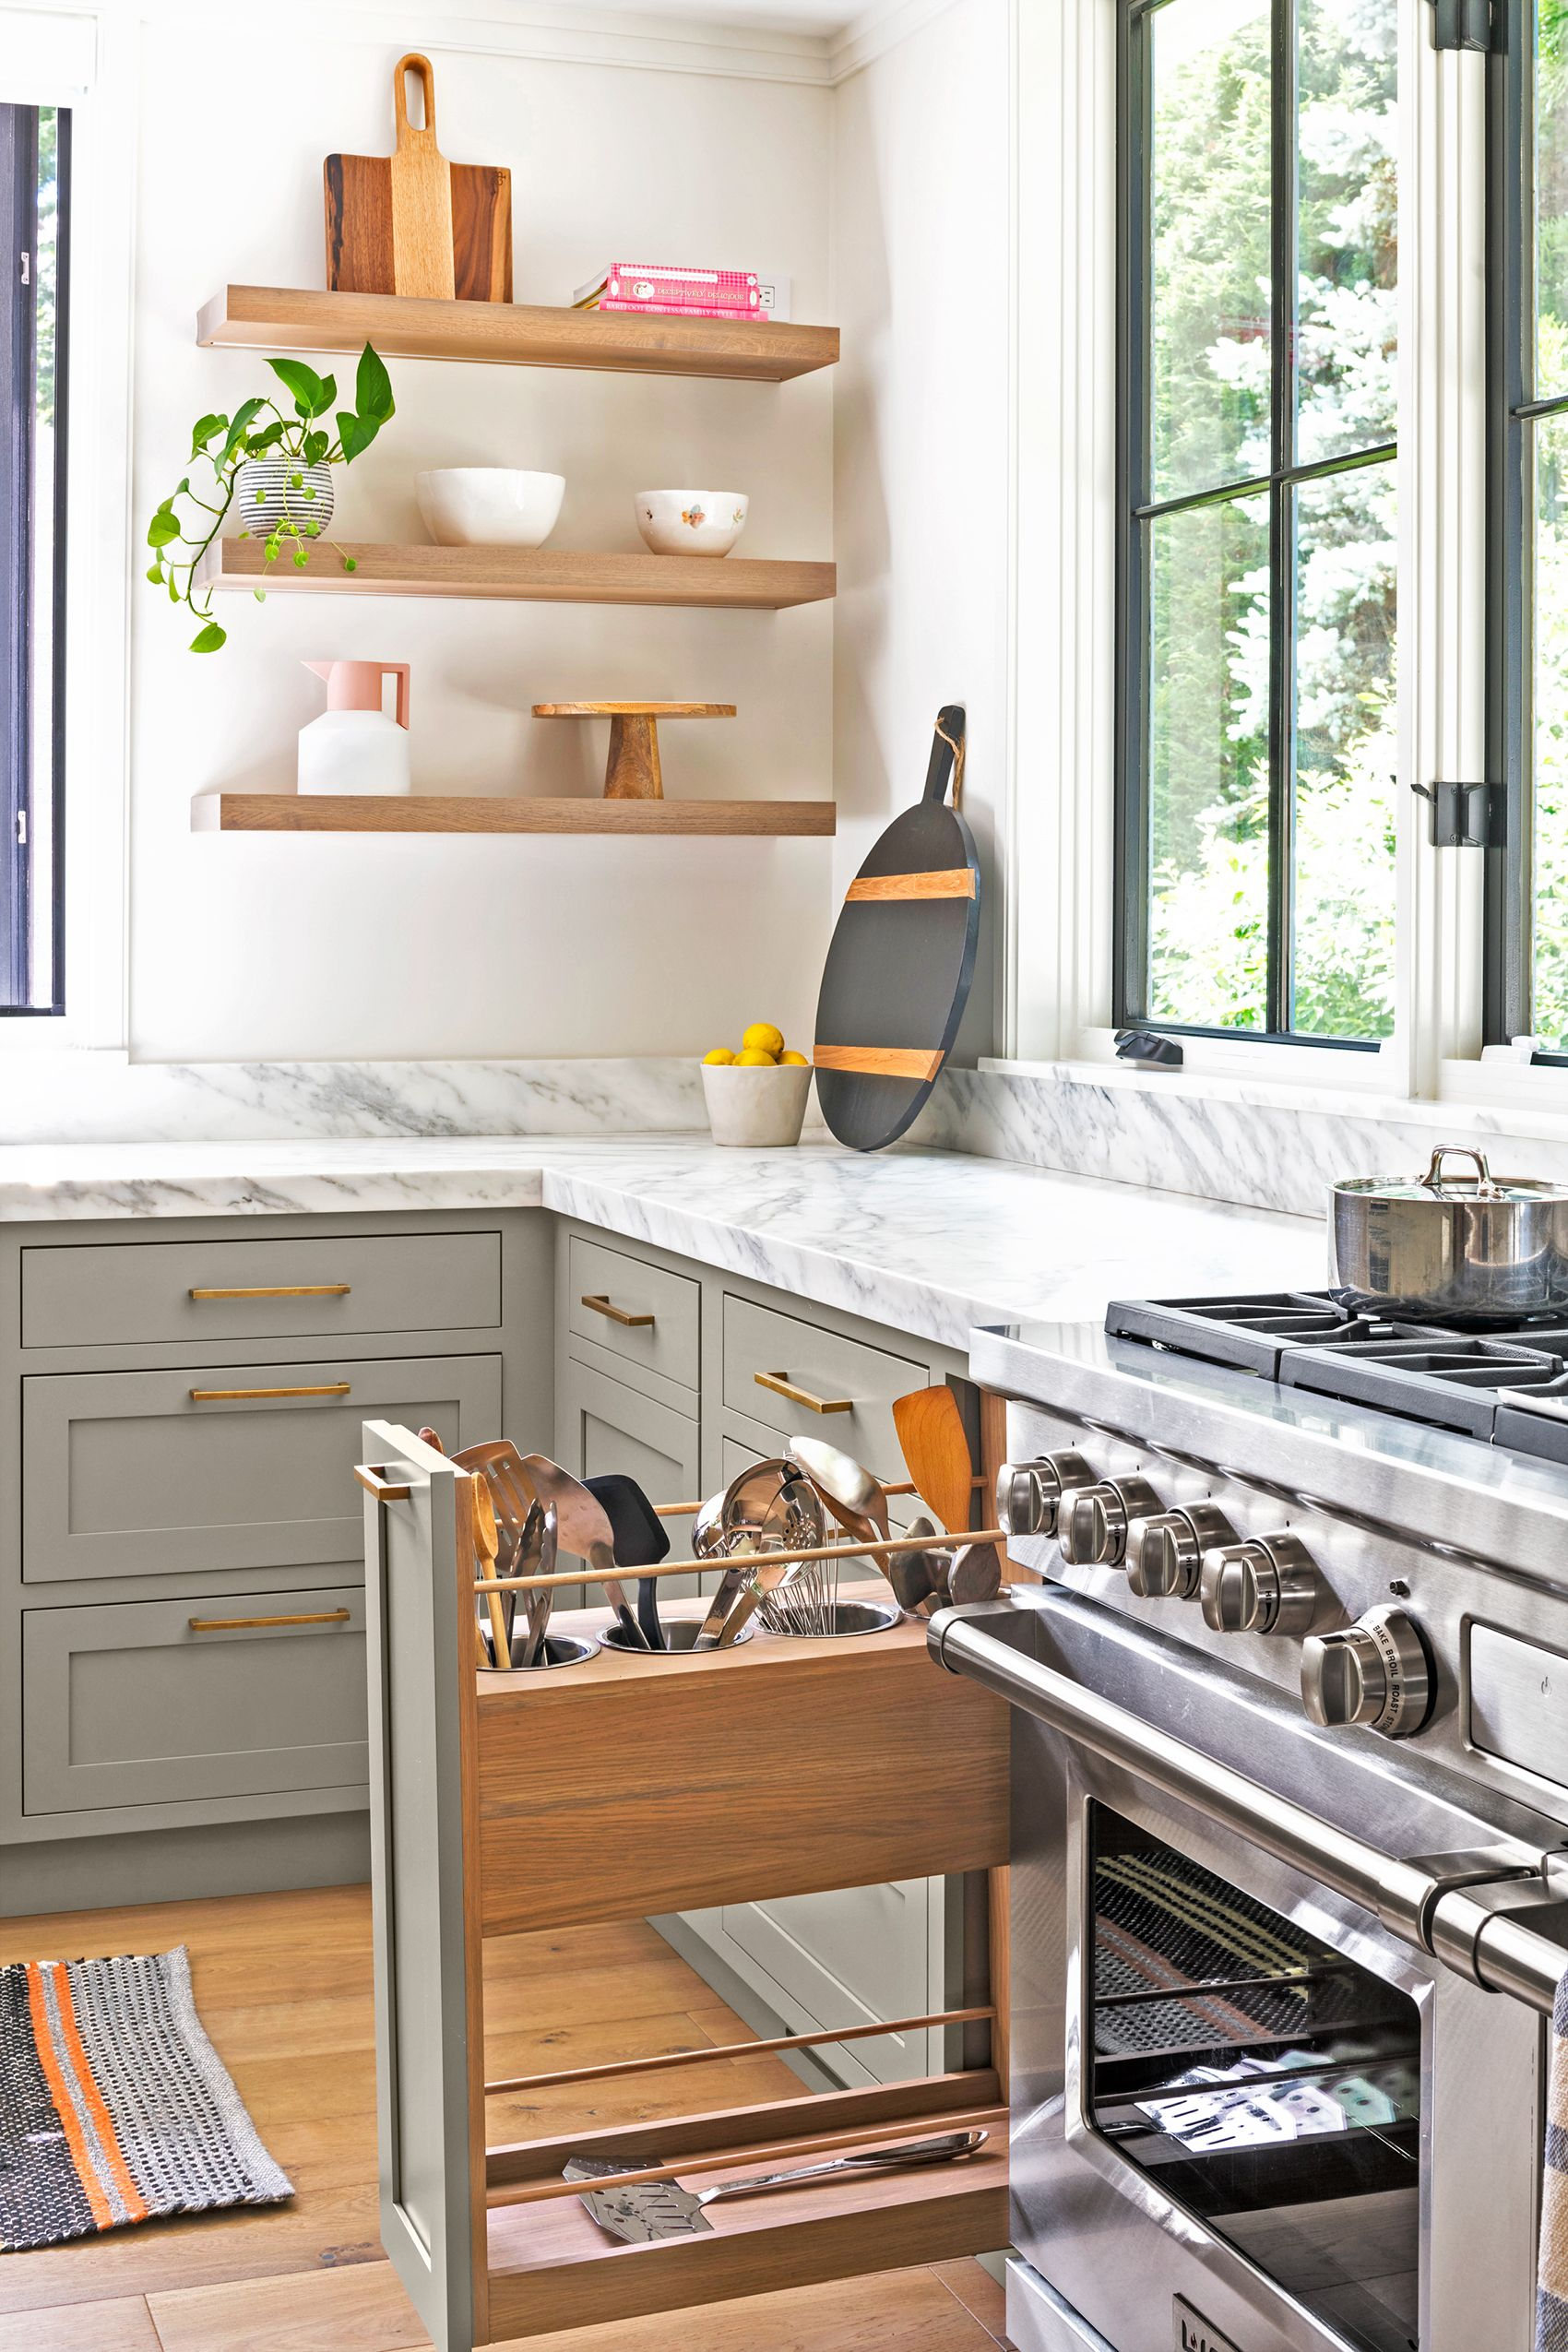 38 Unique Kitchen Storage Ideas Easy Storage Solutions For Kitchens